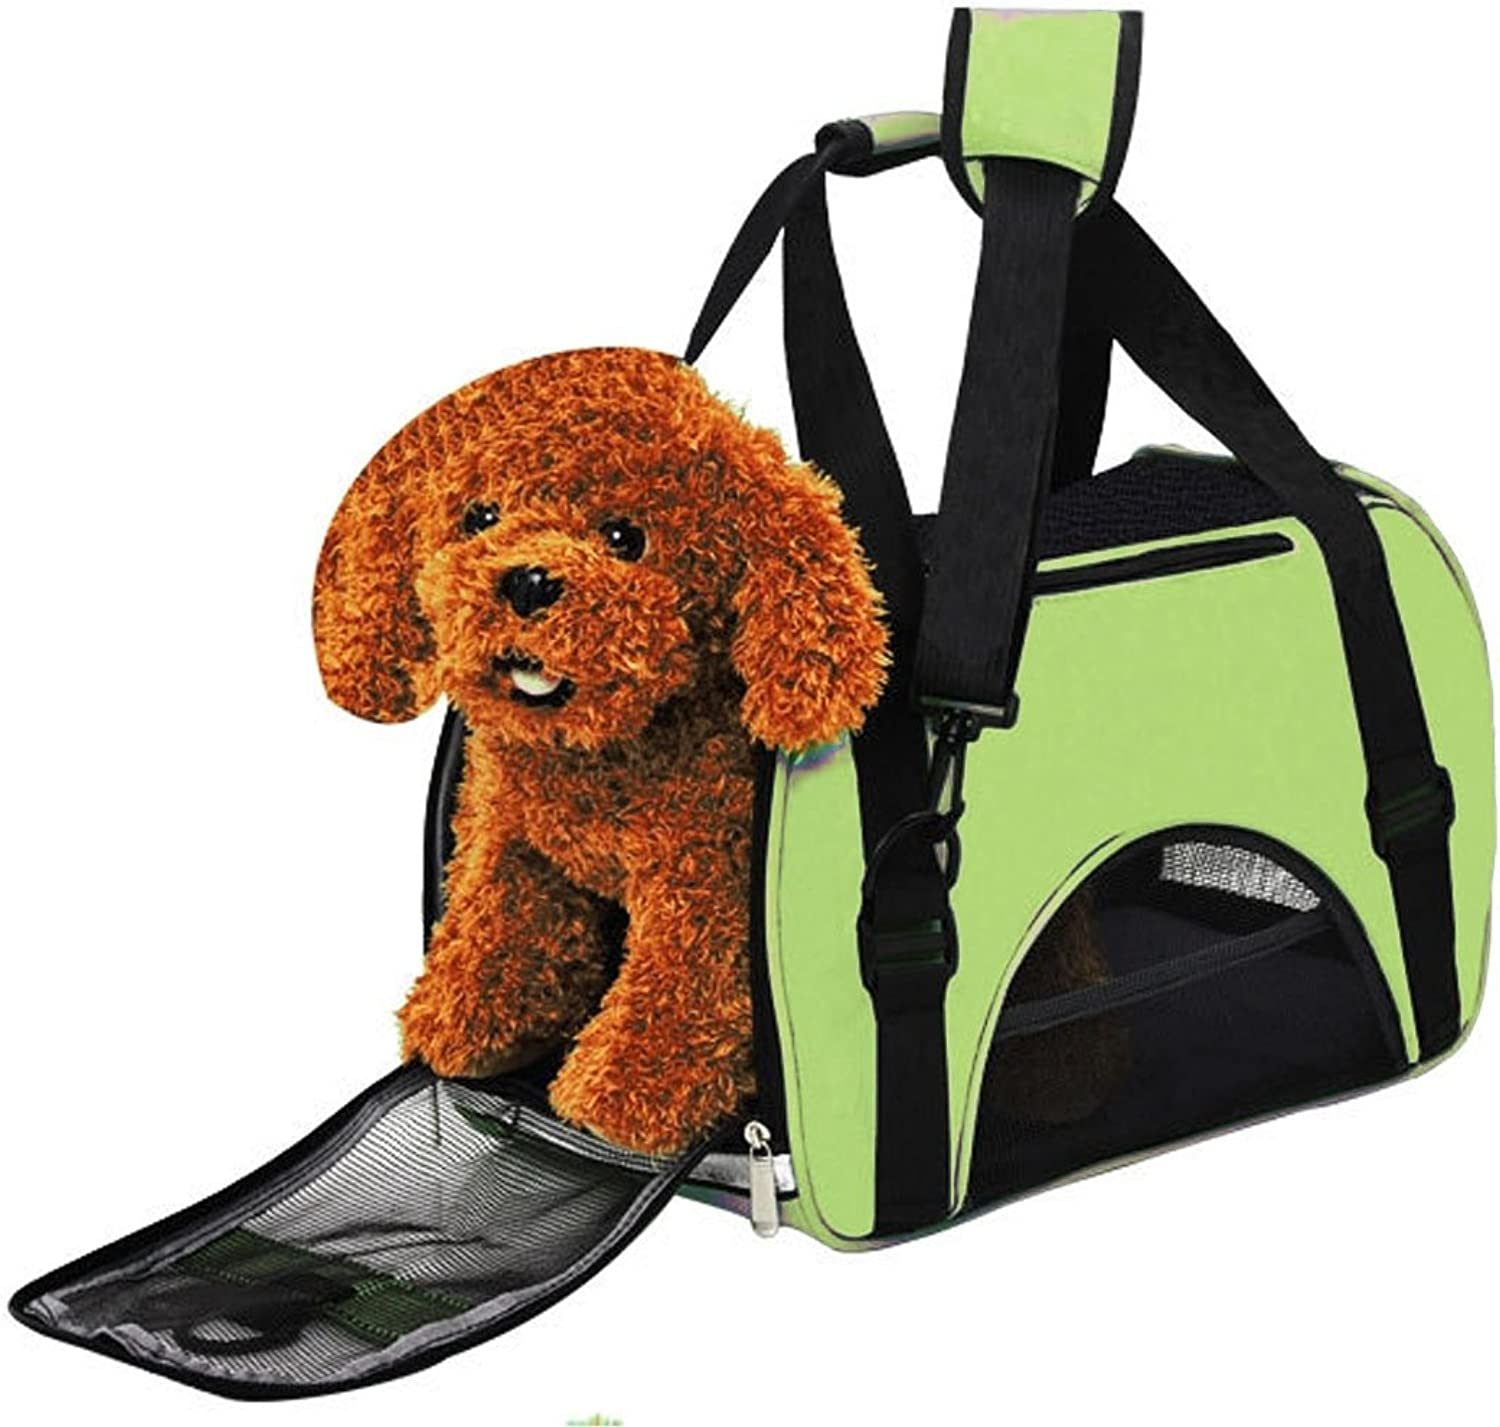 HHF Pet Supplies Pet Waterproof Portable Handbag Shoulder Bag for Cat Dog and oher Pets, Small Size 40  30  20cm (color   Green)